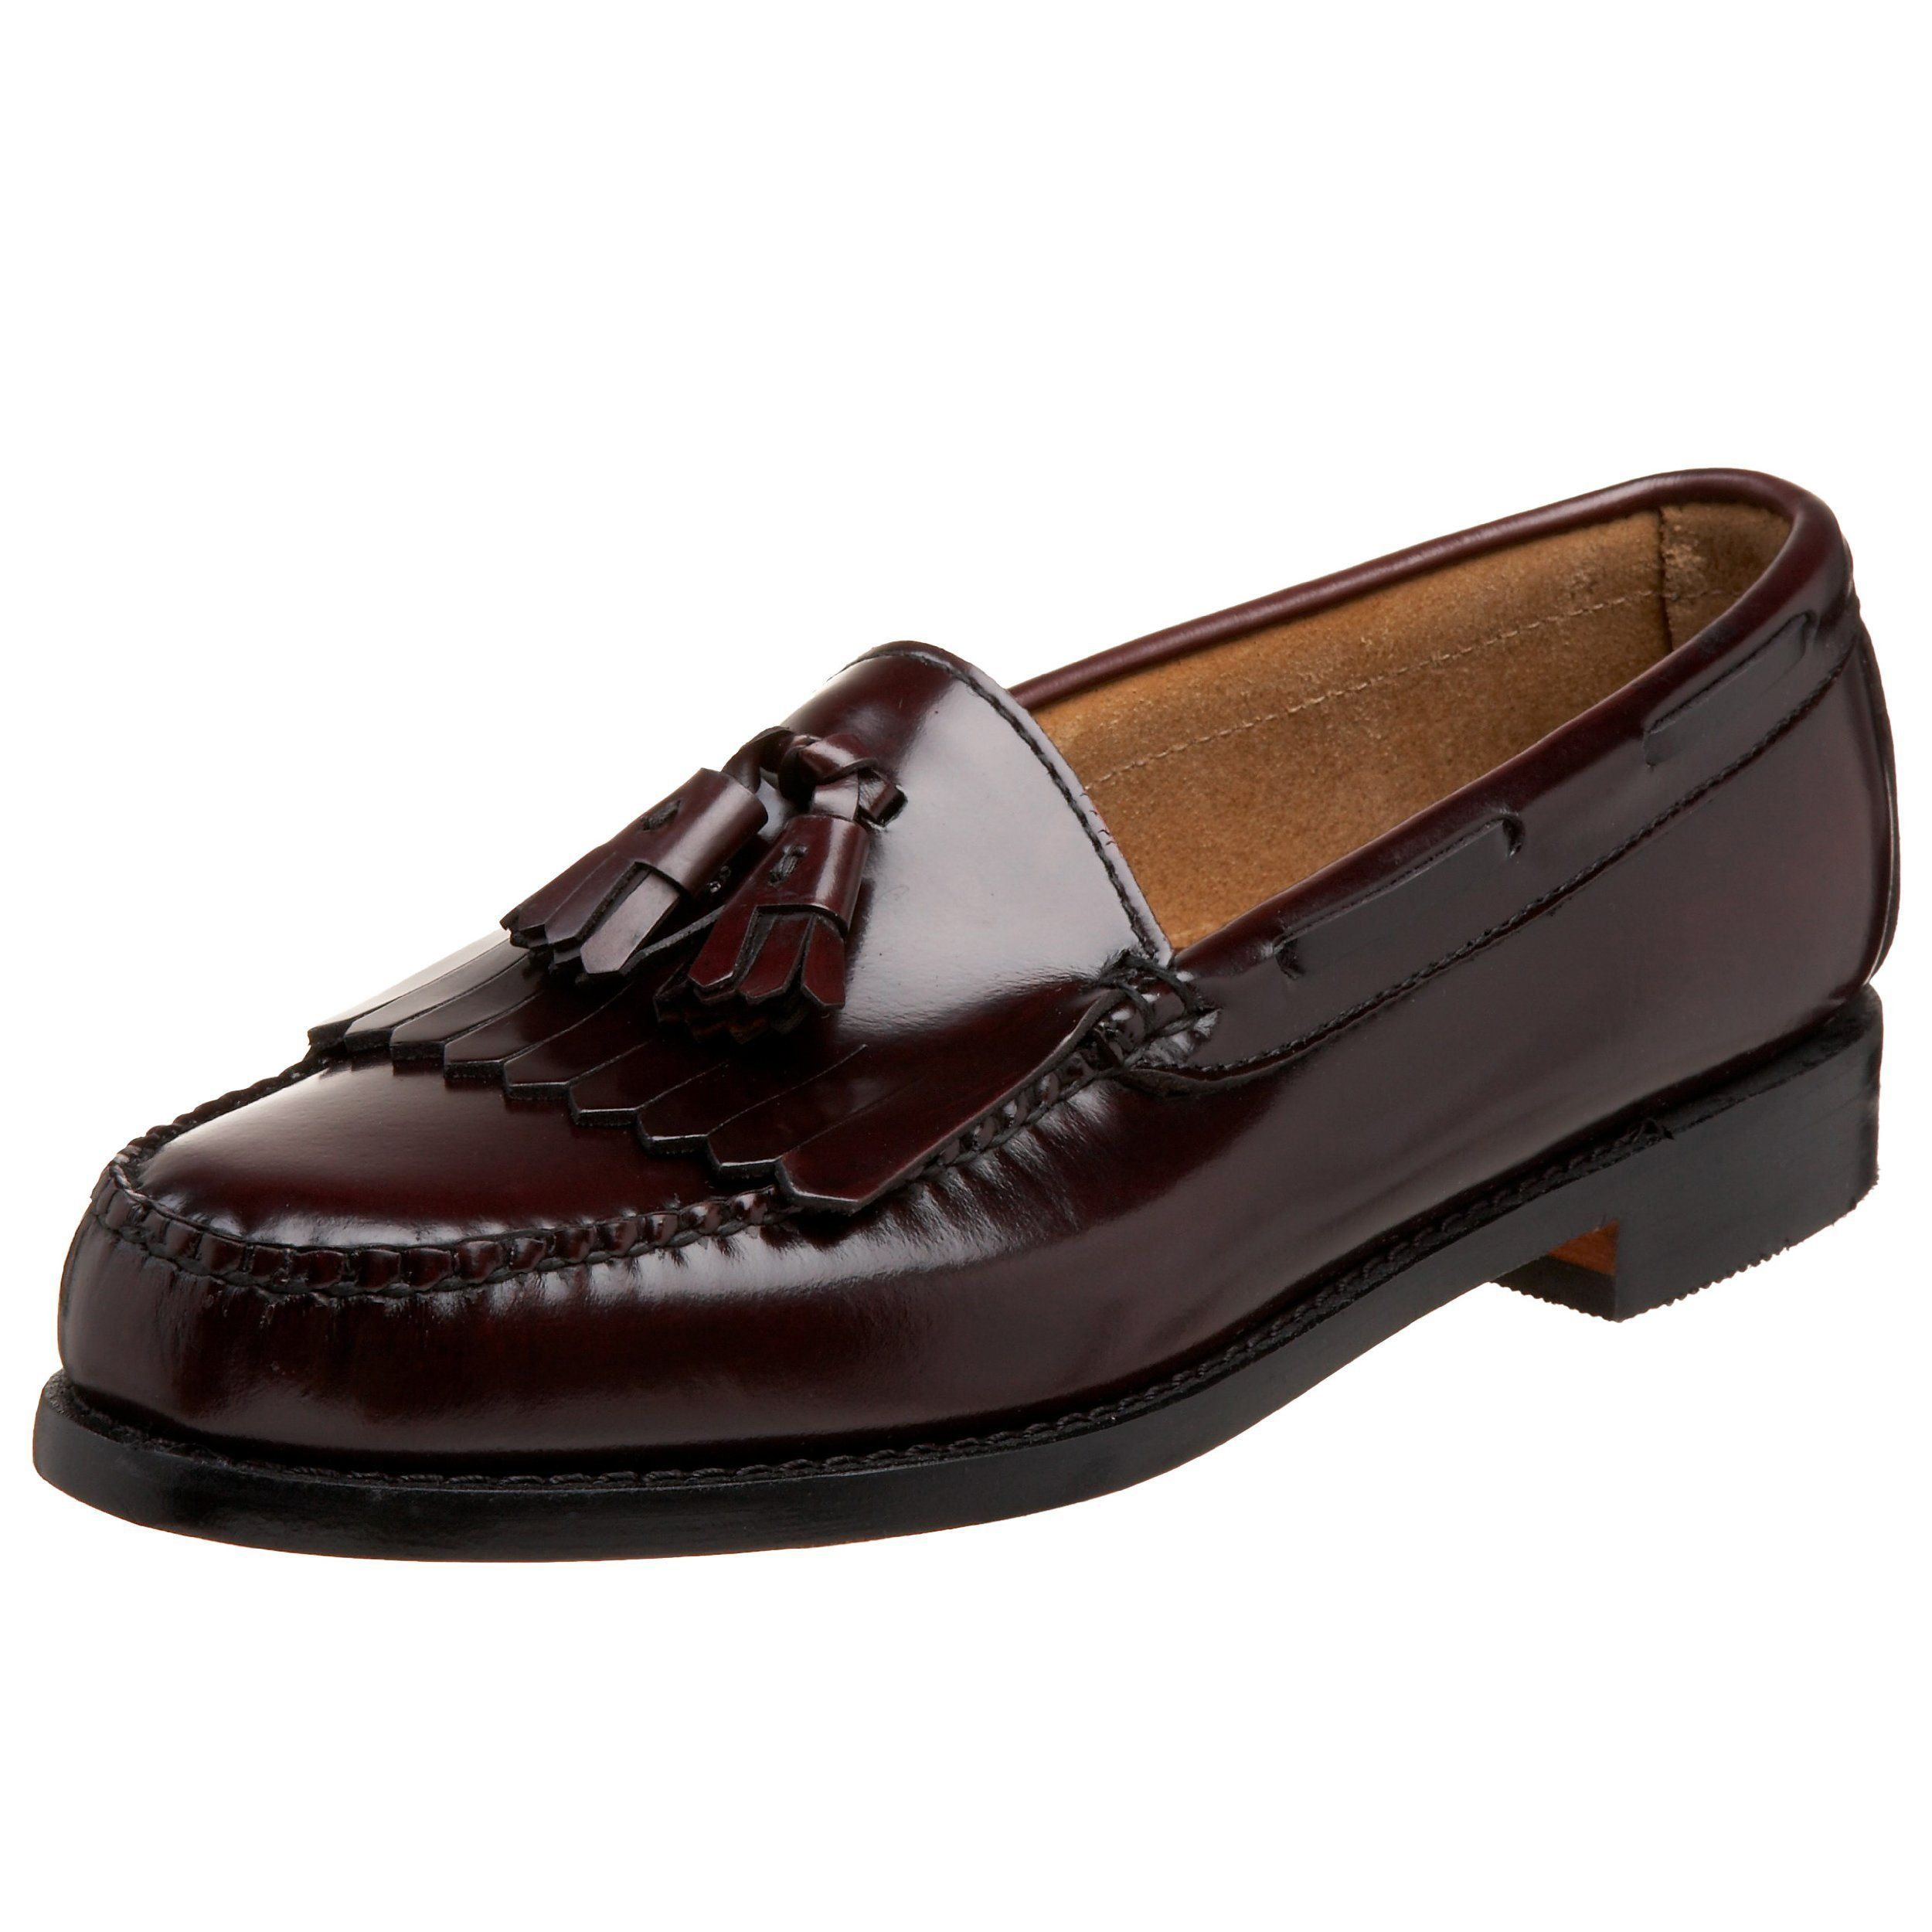 faf5ec6f293 Bass Men s Layton Kiltie Tassel Loafer